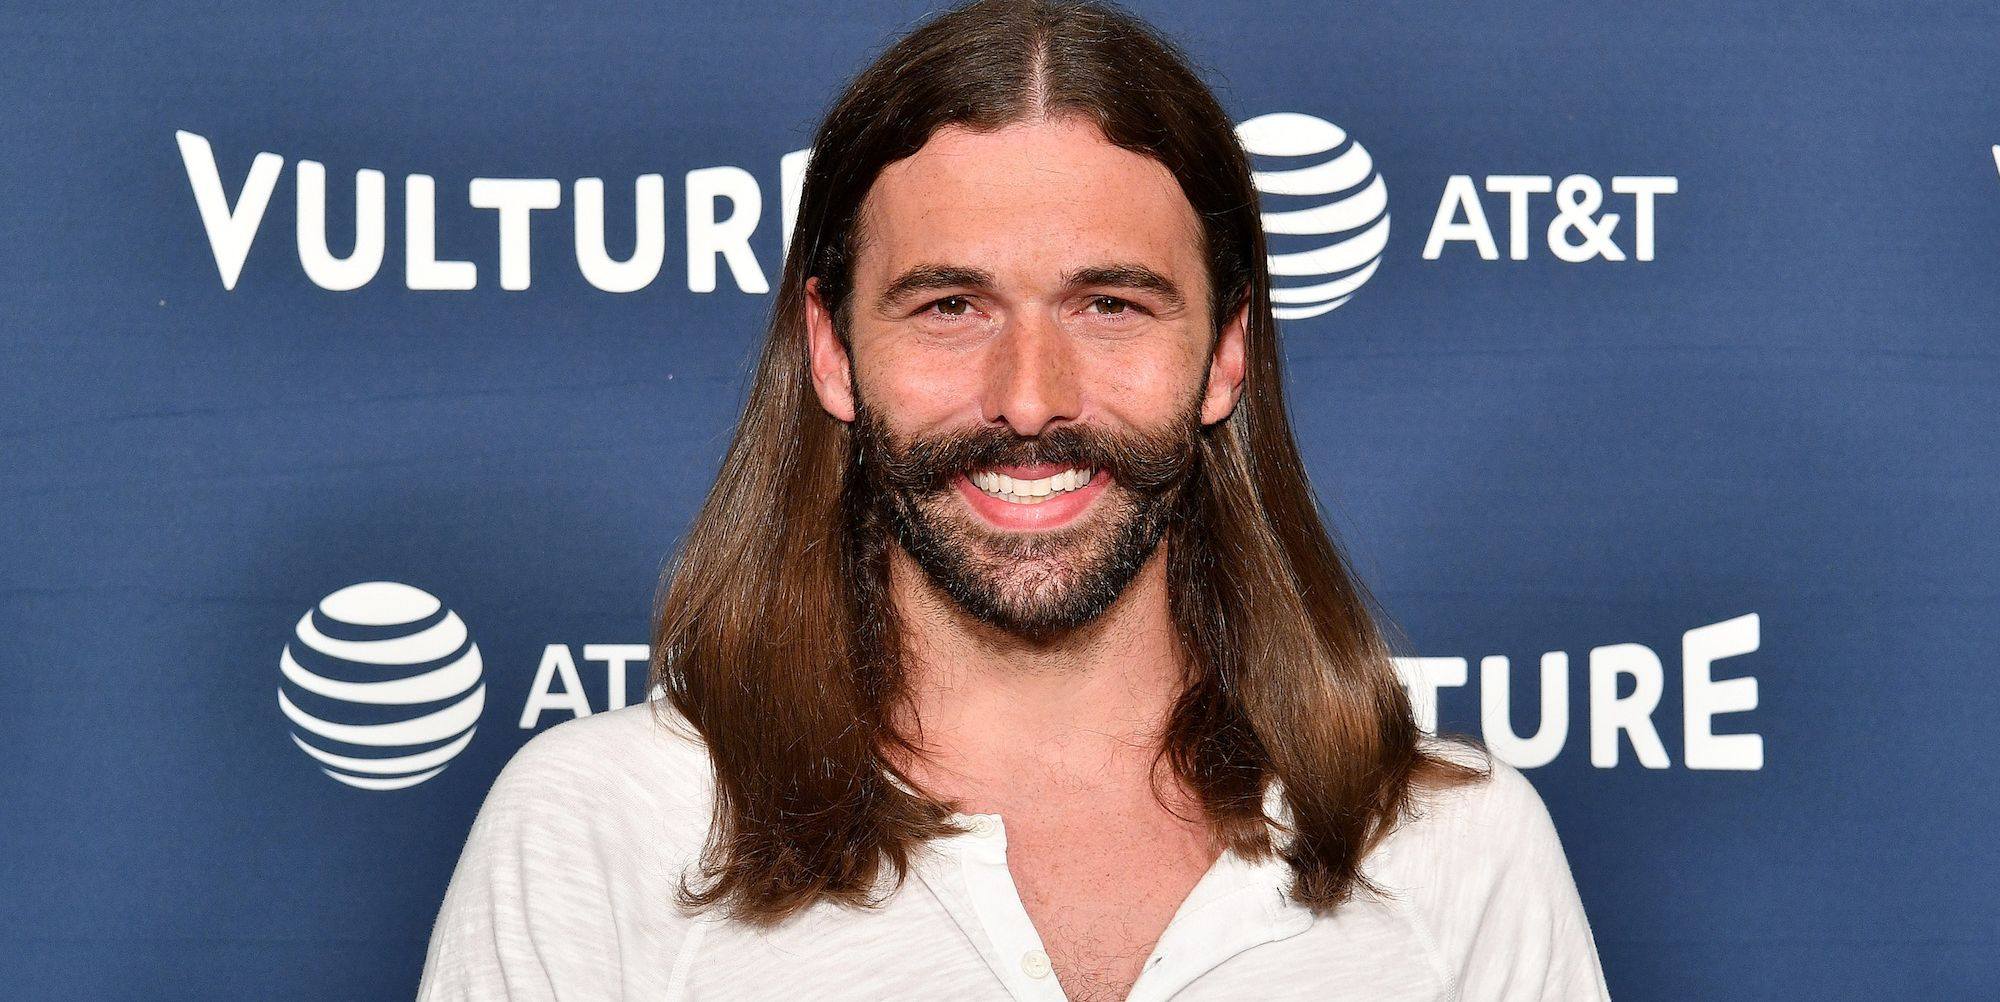 Jonathan Van Ness grooming advice products